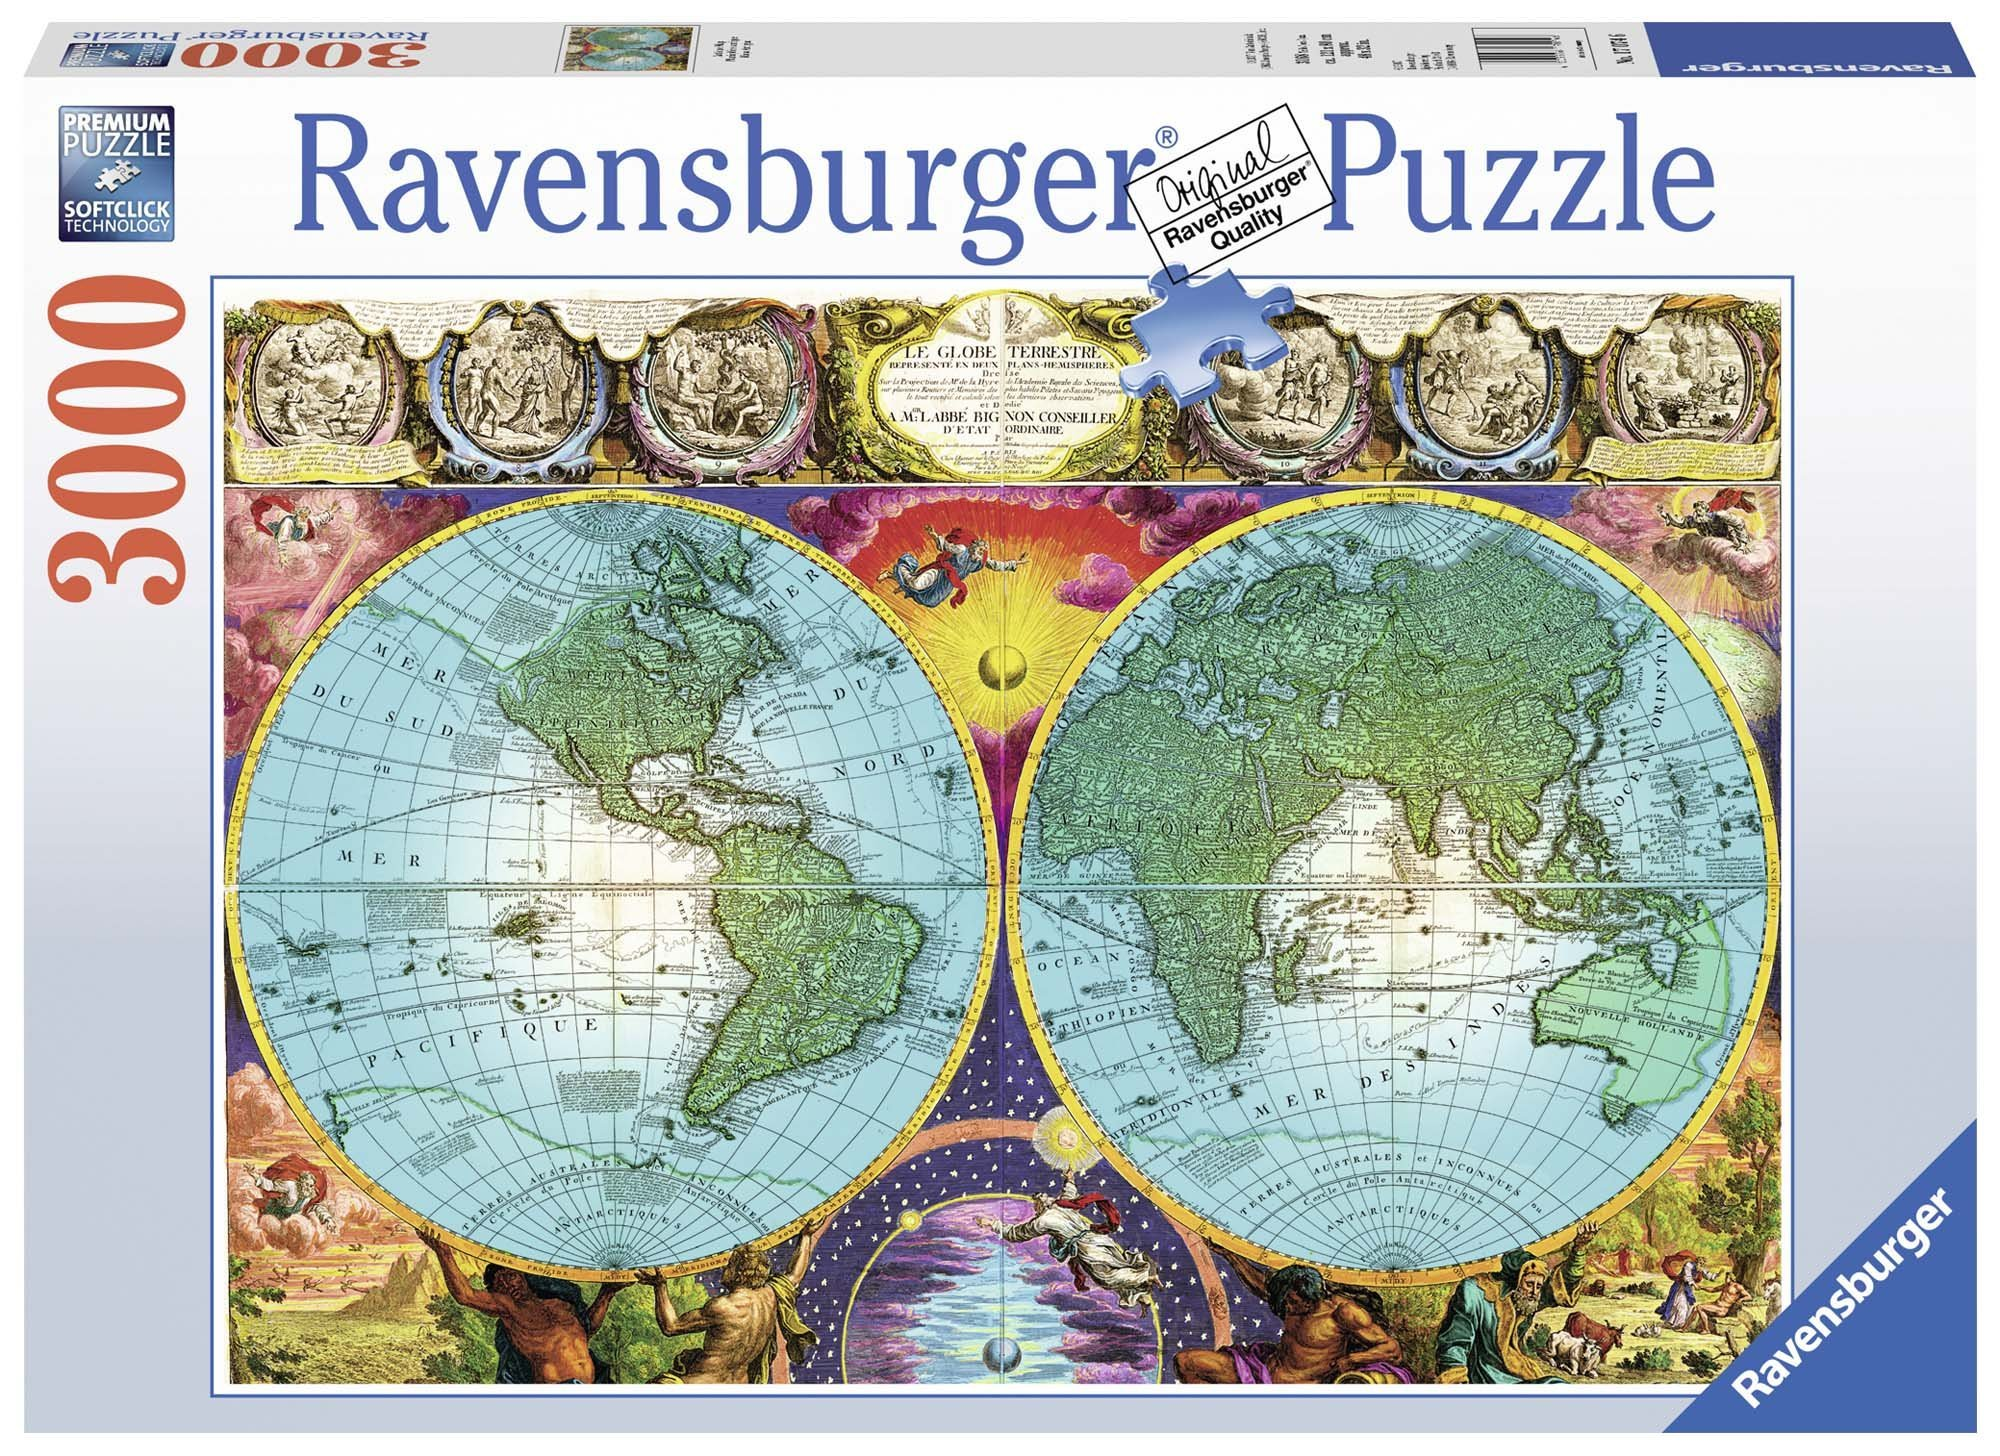 Ravensburger Antique Map Puzzle 3000 Piece Jigsaw Puzzle for Adults - Softclick Technology Means Pieces Fit Together Perfectly by Ravensburger